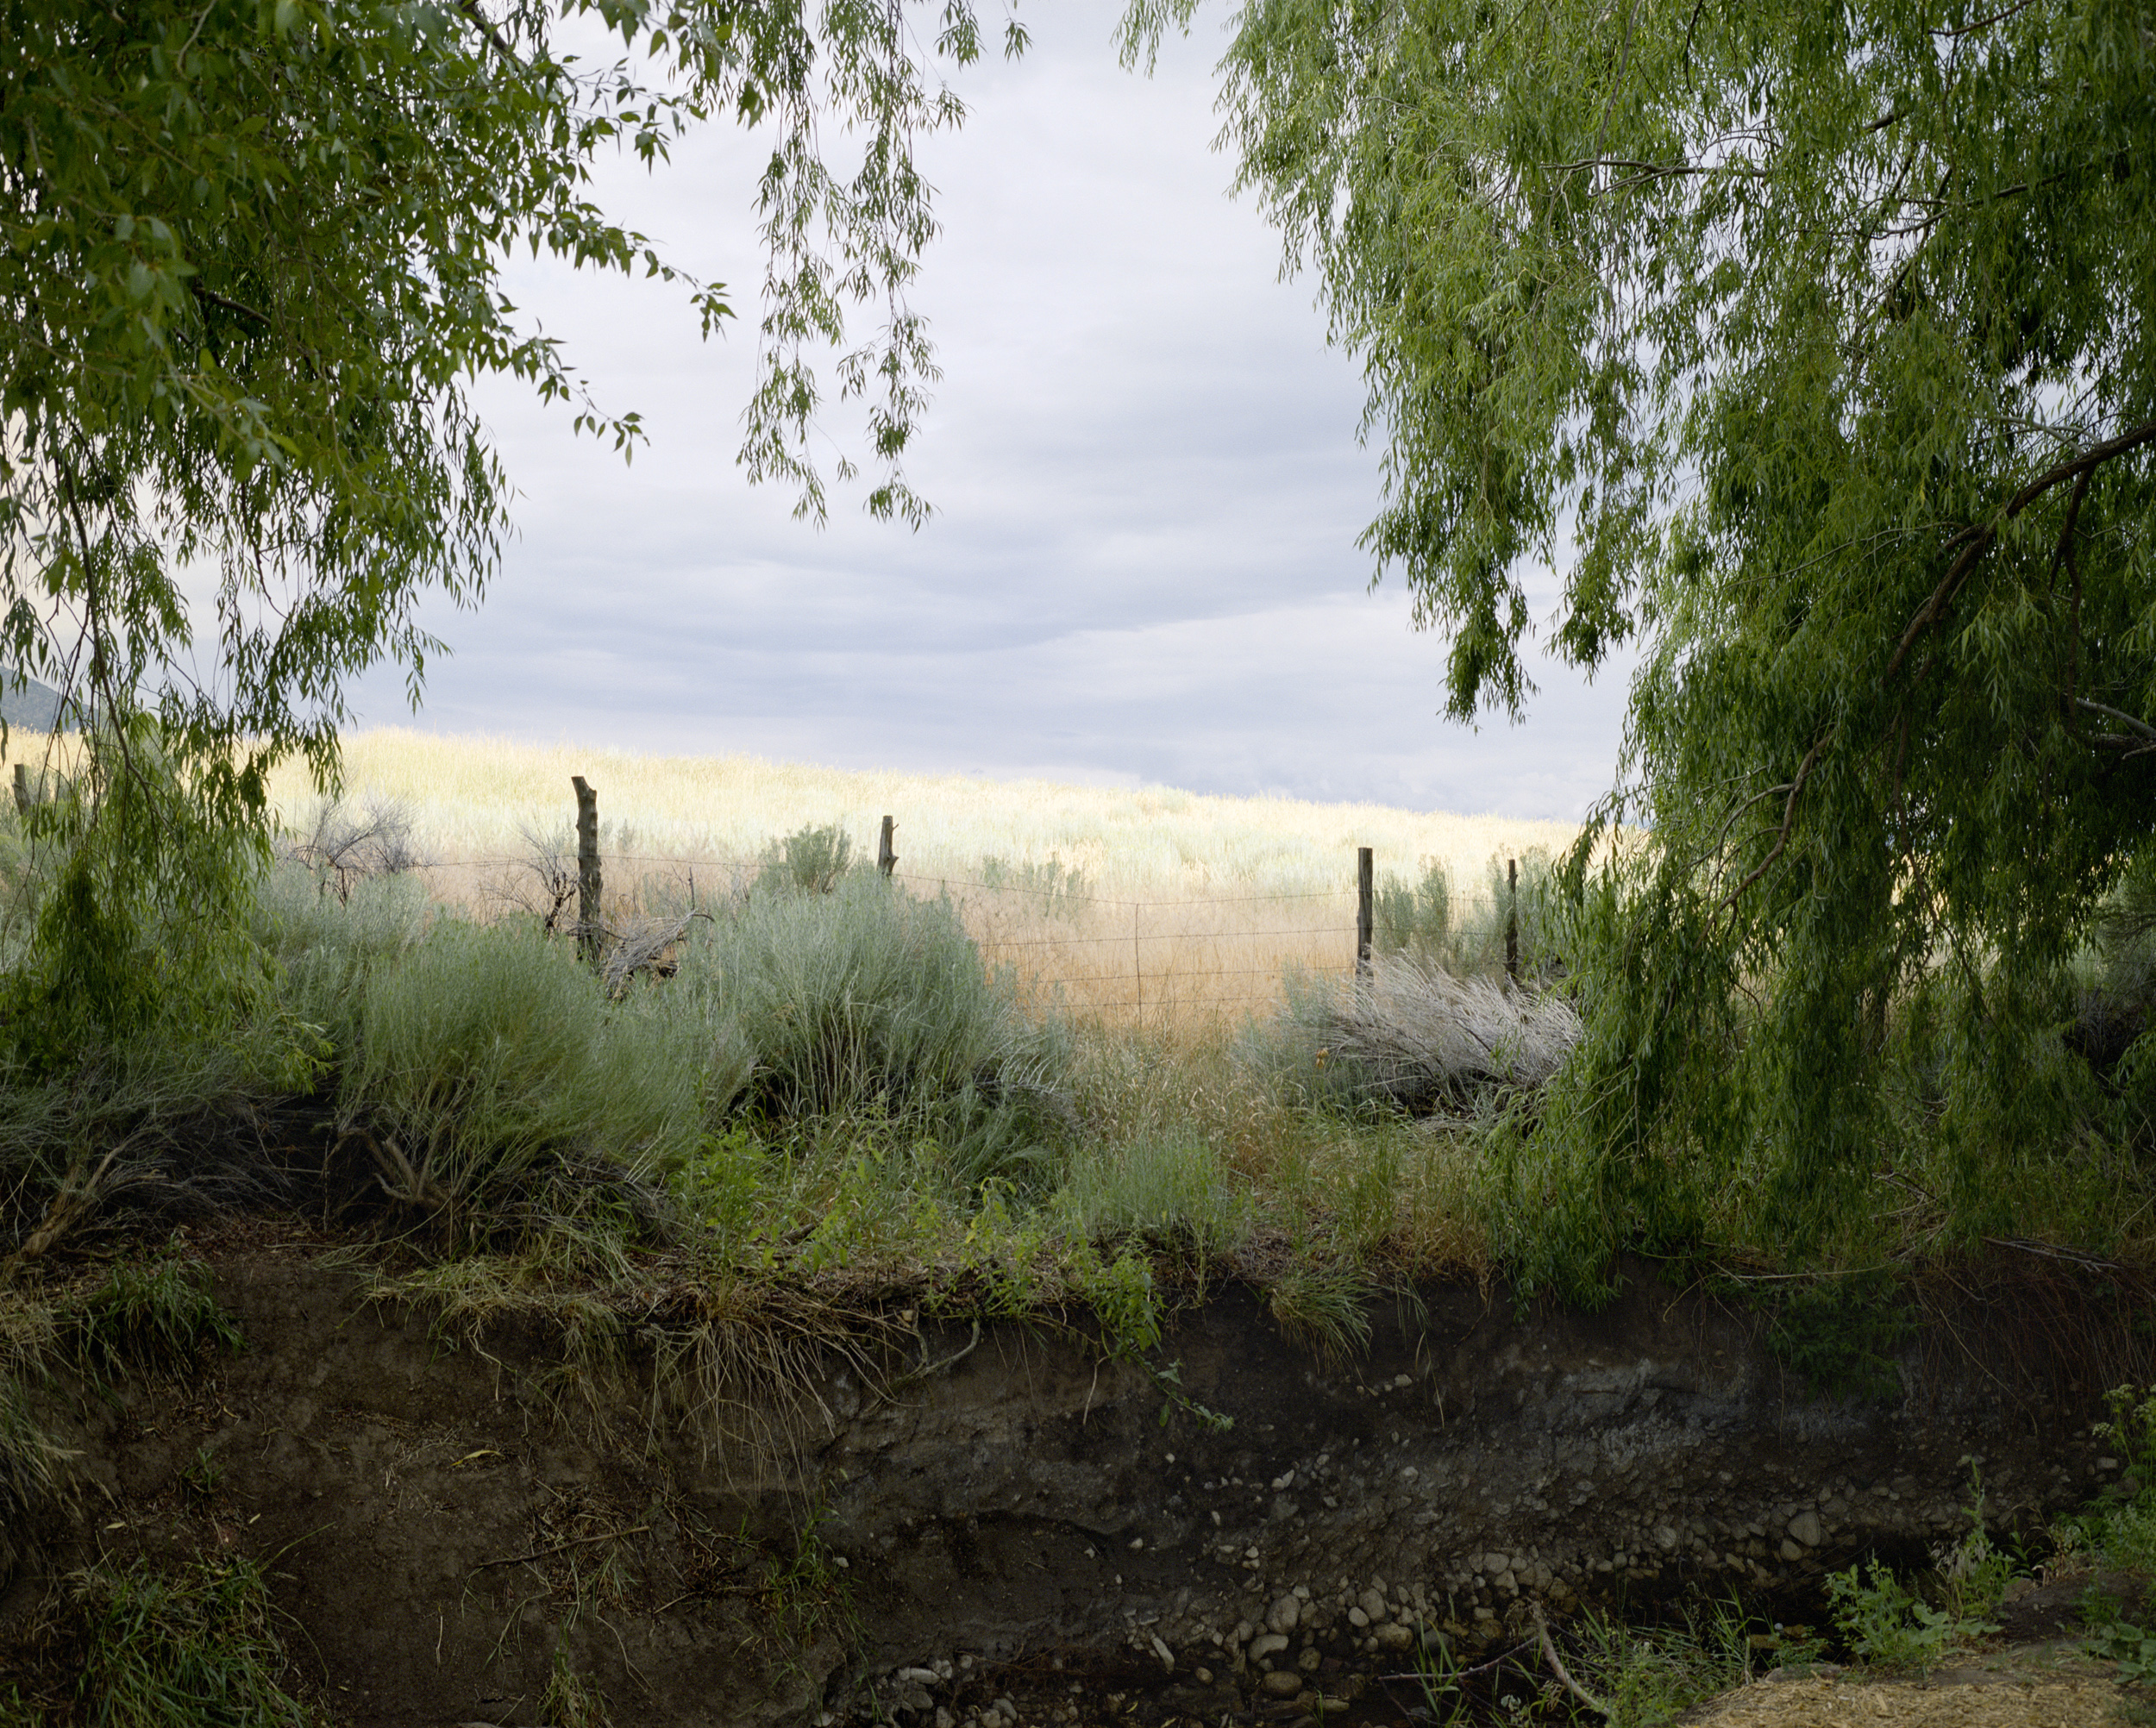 Clearing (Arroyo Seco, New Mexico)